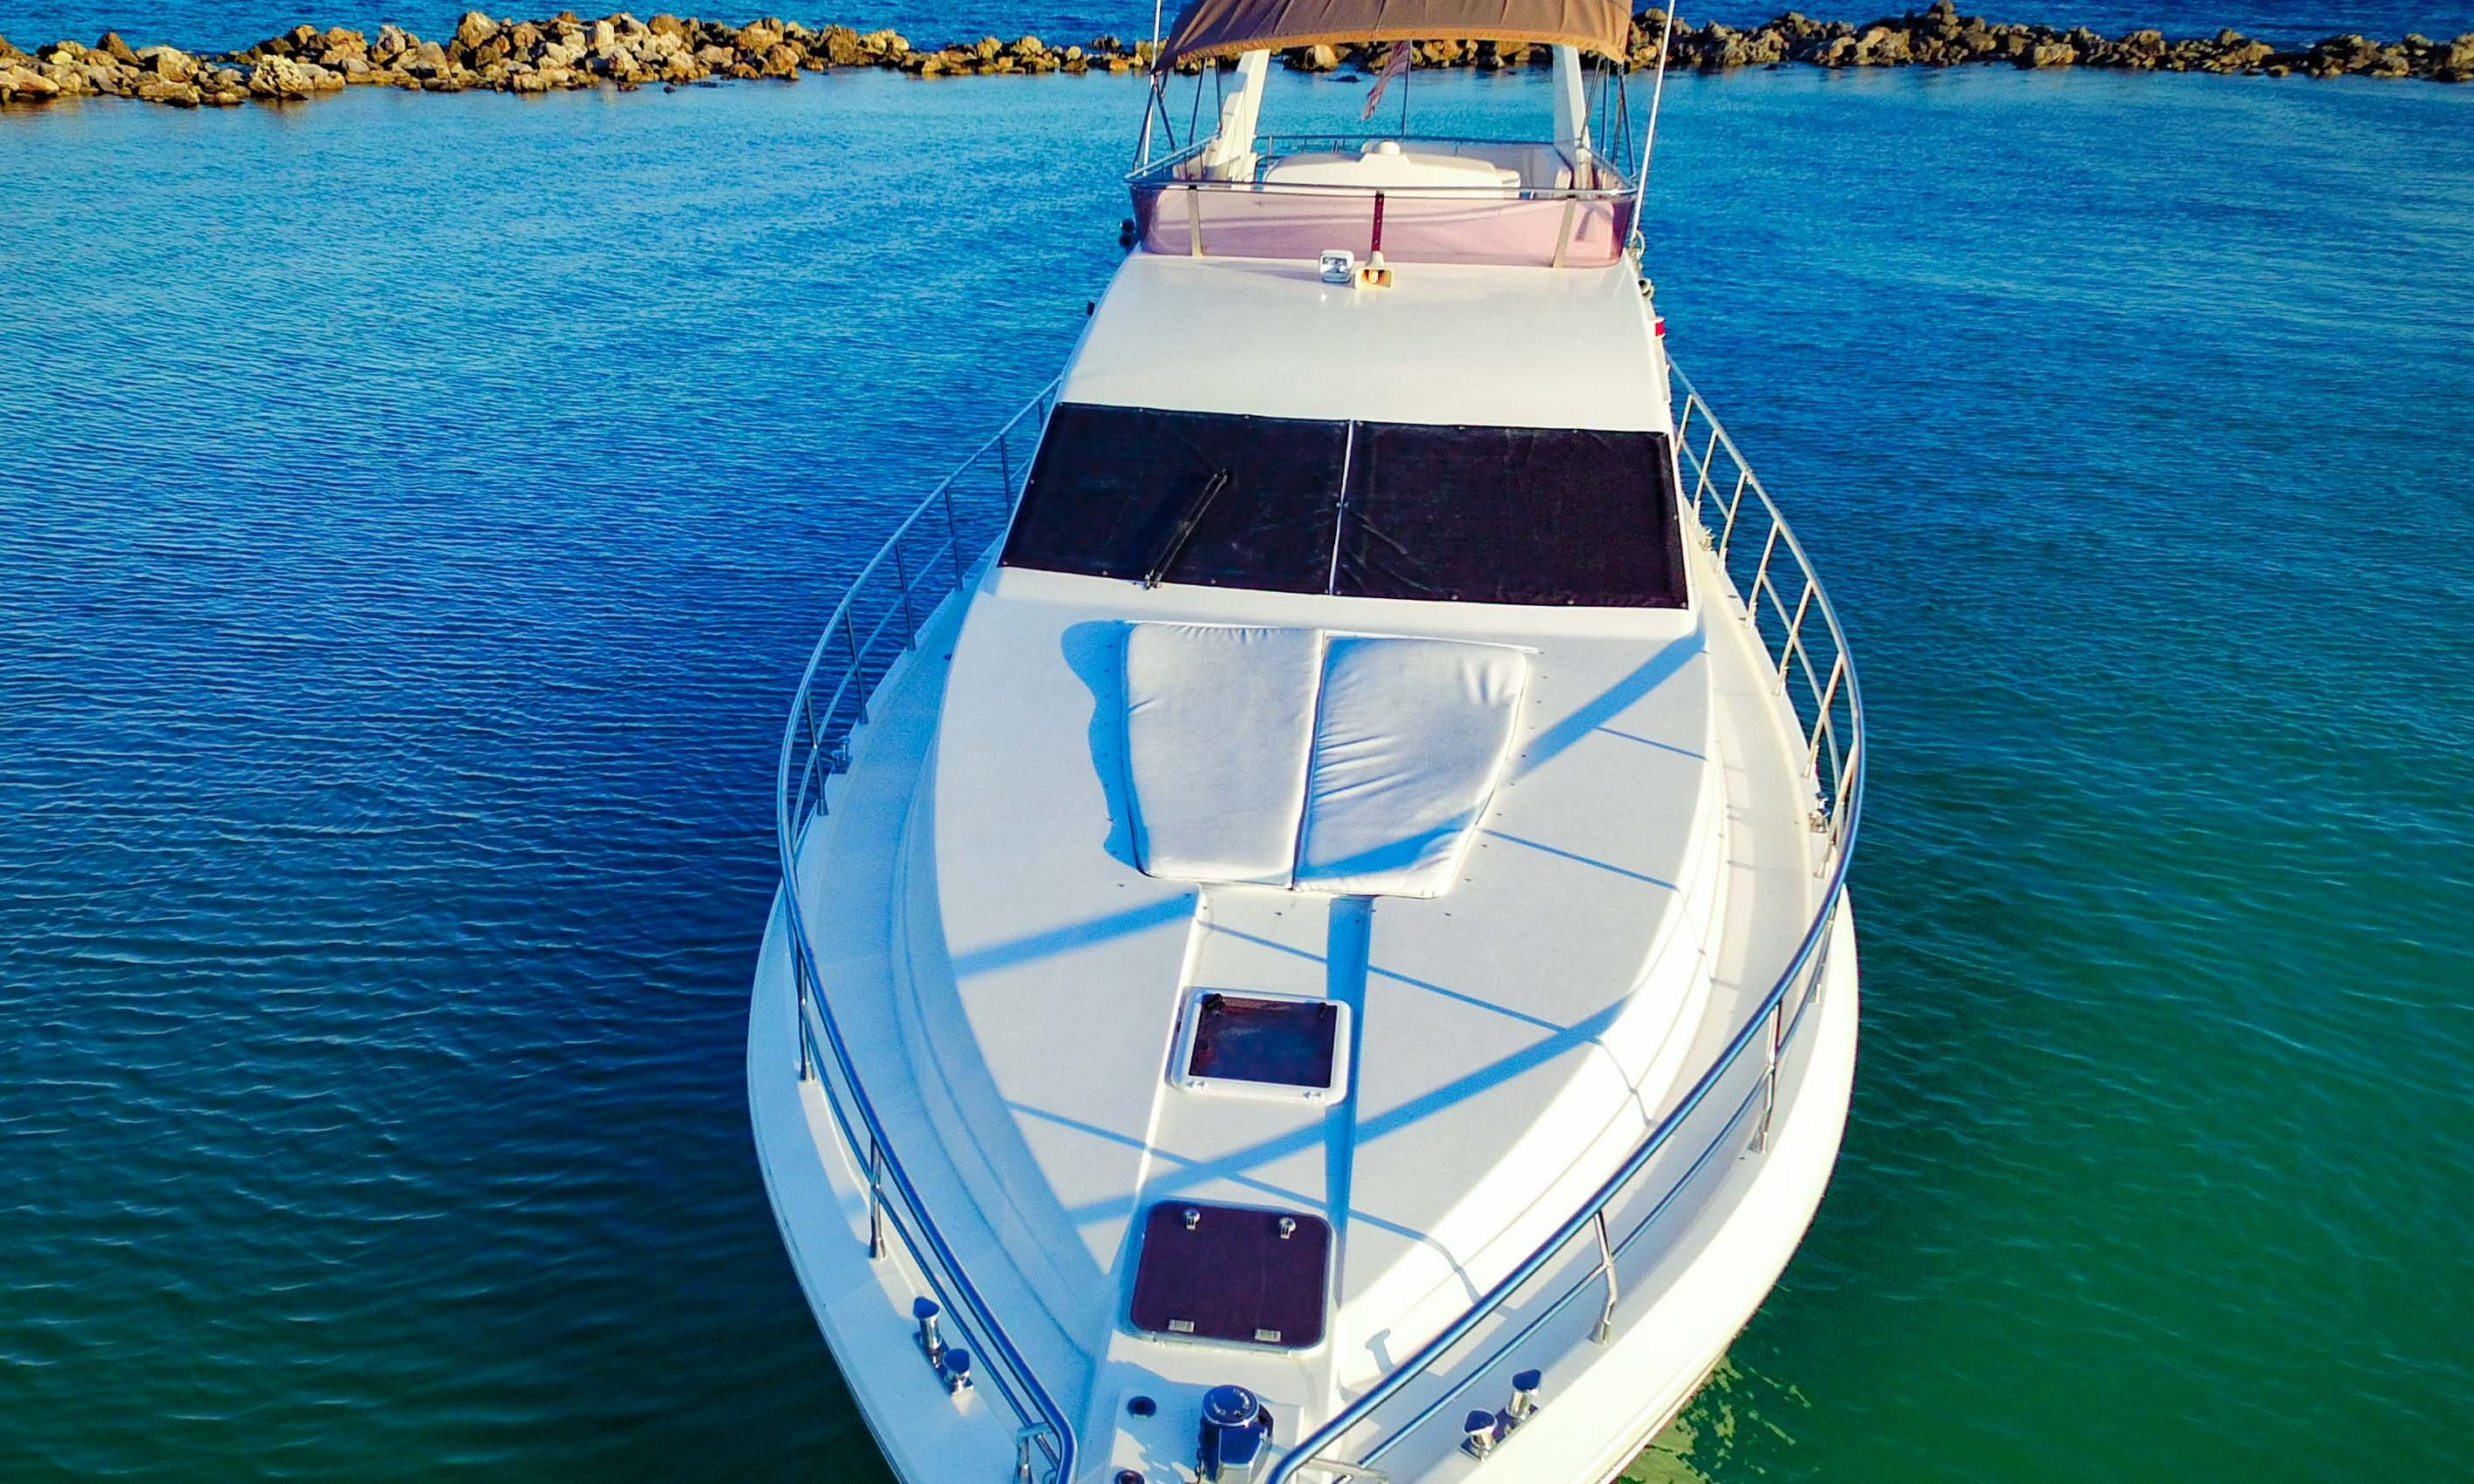 62' Motor Yacht rental in Playa del Carmen